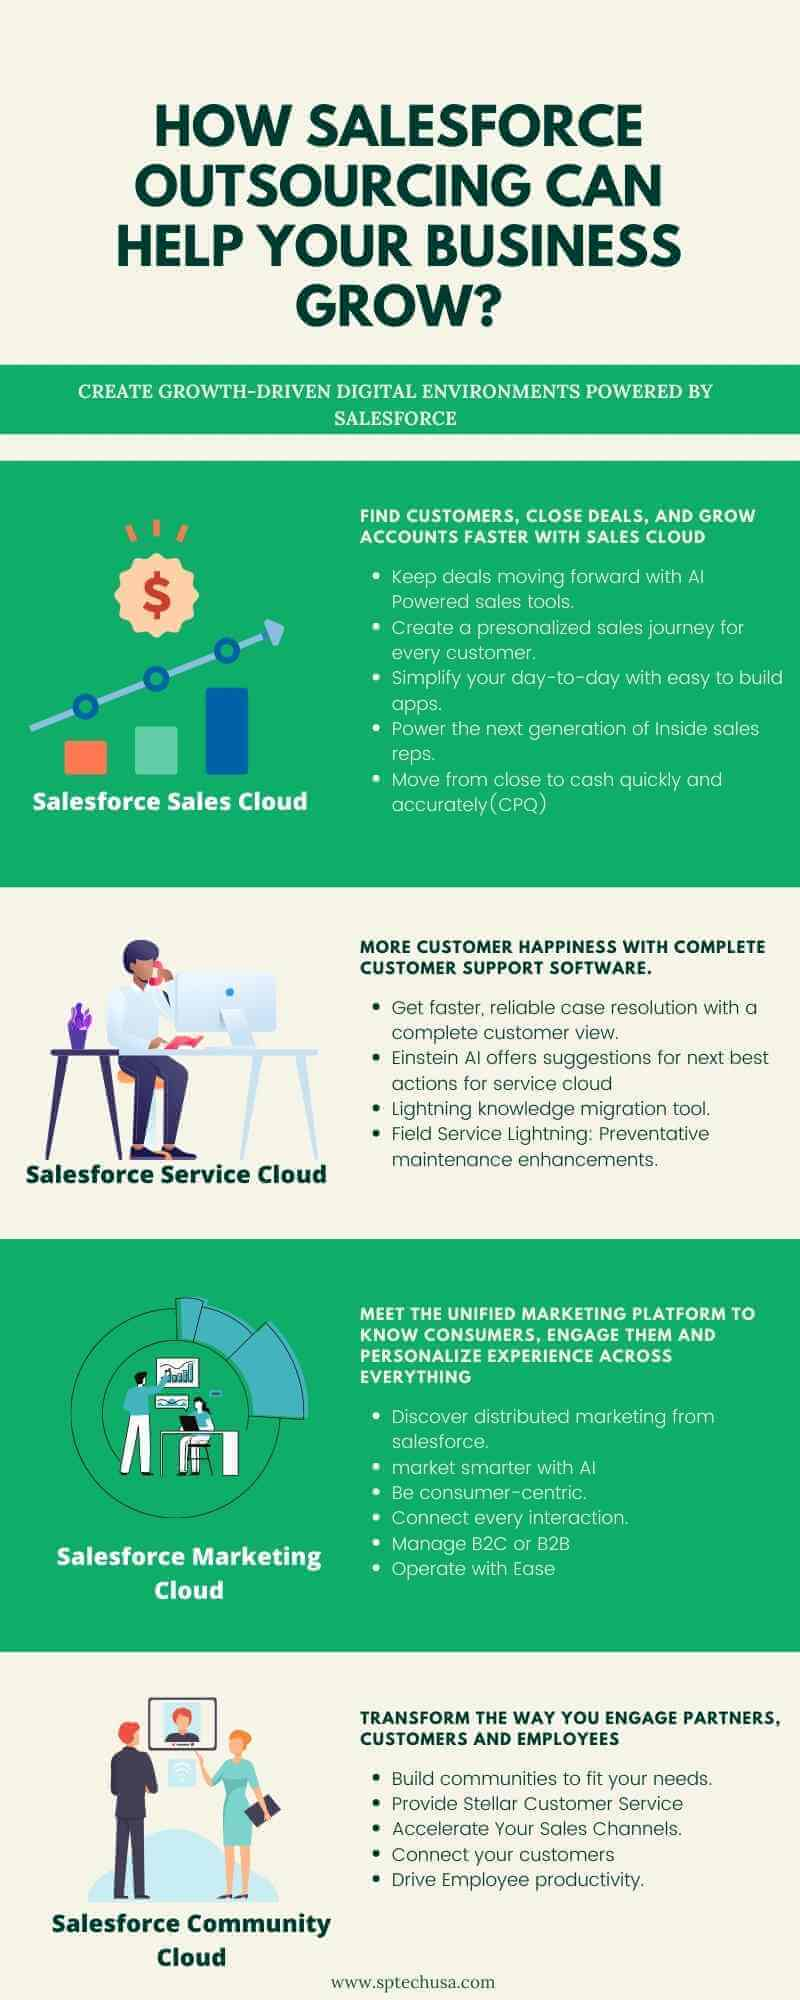 How Salesforce Outsourcing Can Help Your Business Grow